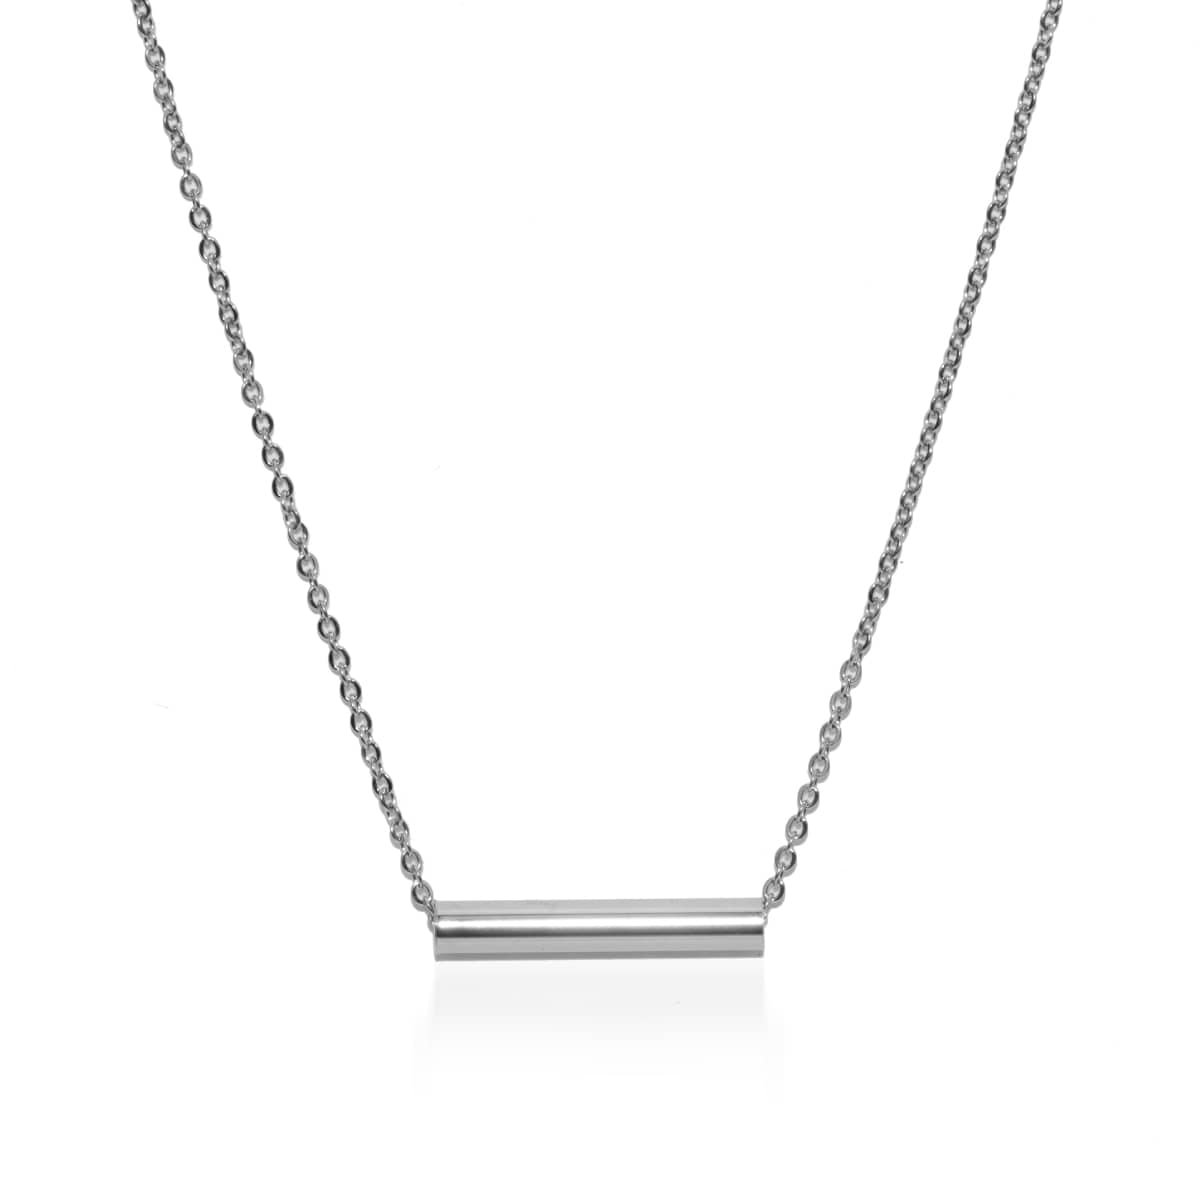 Minimalist | Silver | Necklace